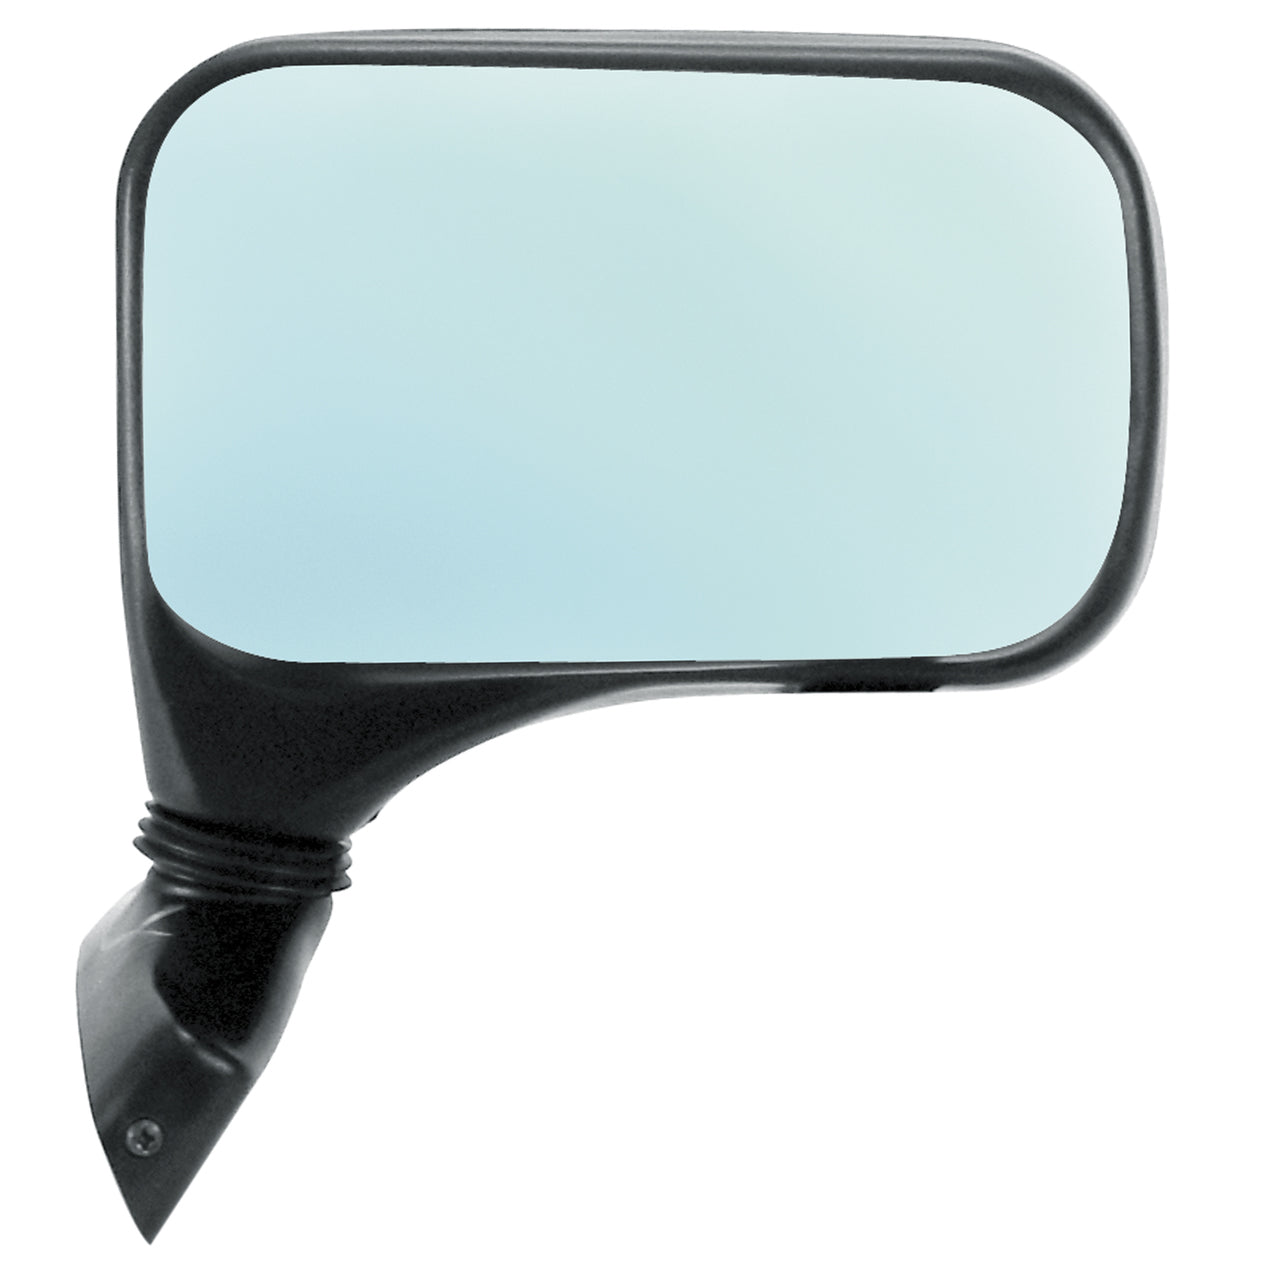 MINI SPRINT MIRROR FOR VW BUG, BEETLE, GHIA. RIGHT SIDE EACH